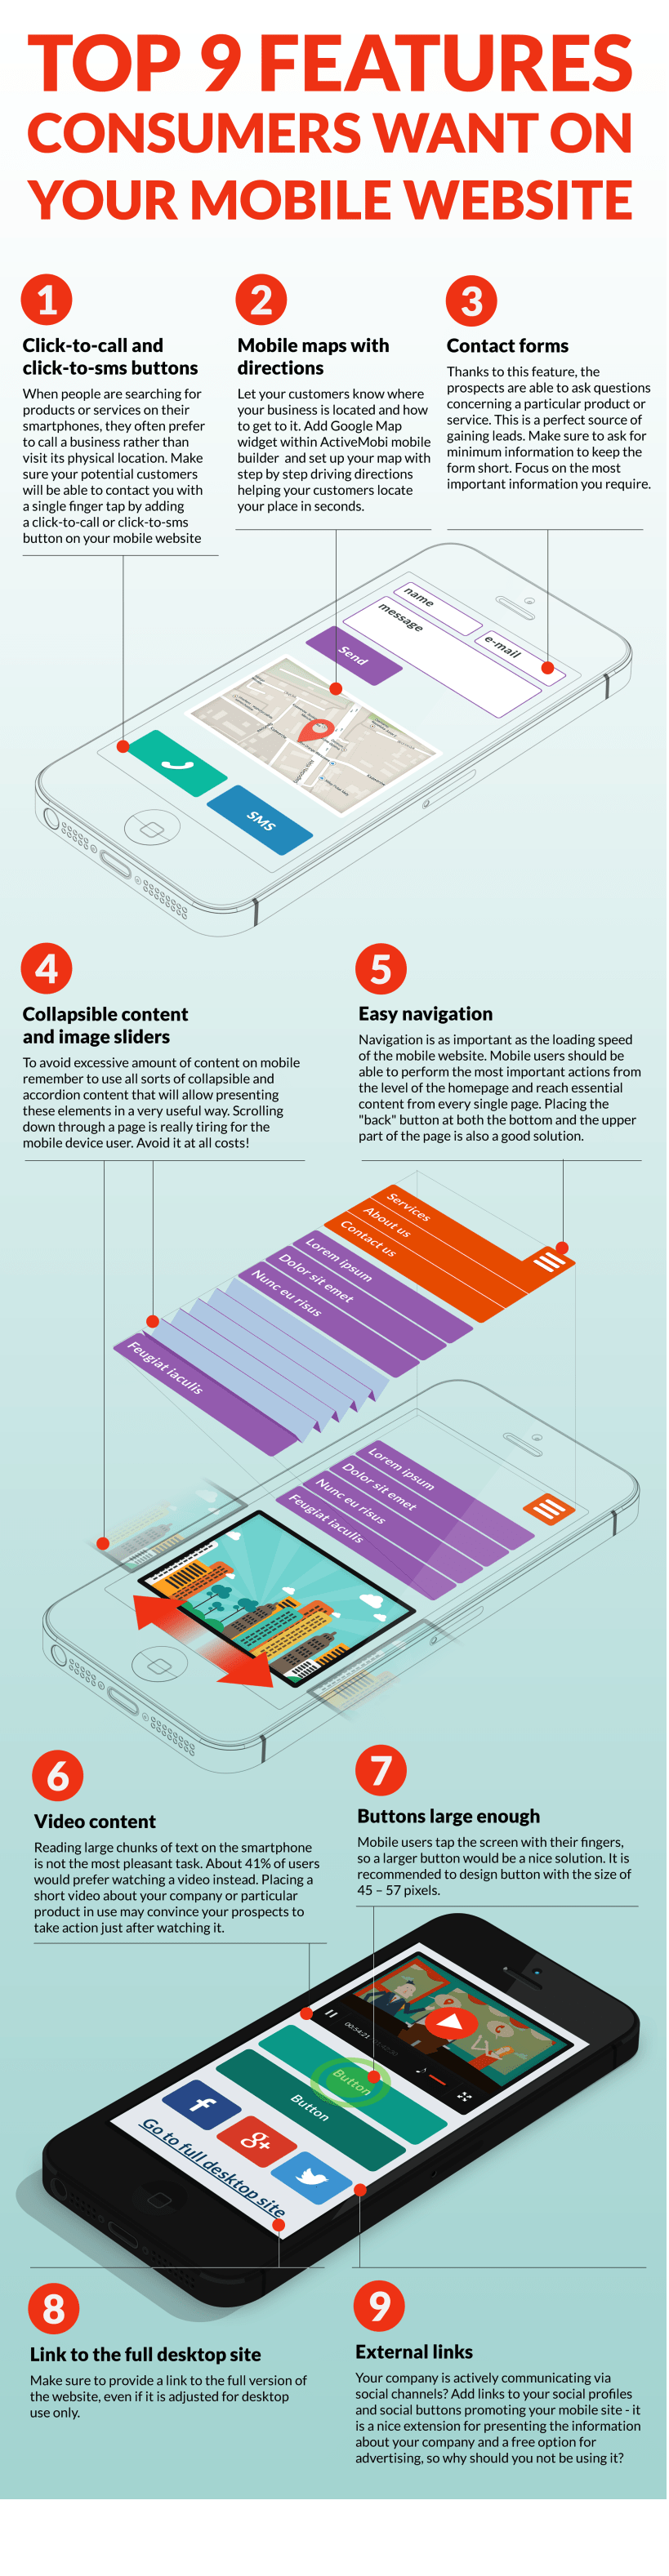 mobile-website-features-infographic